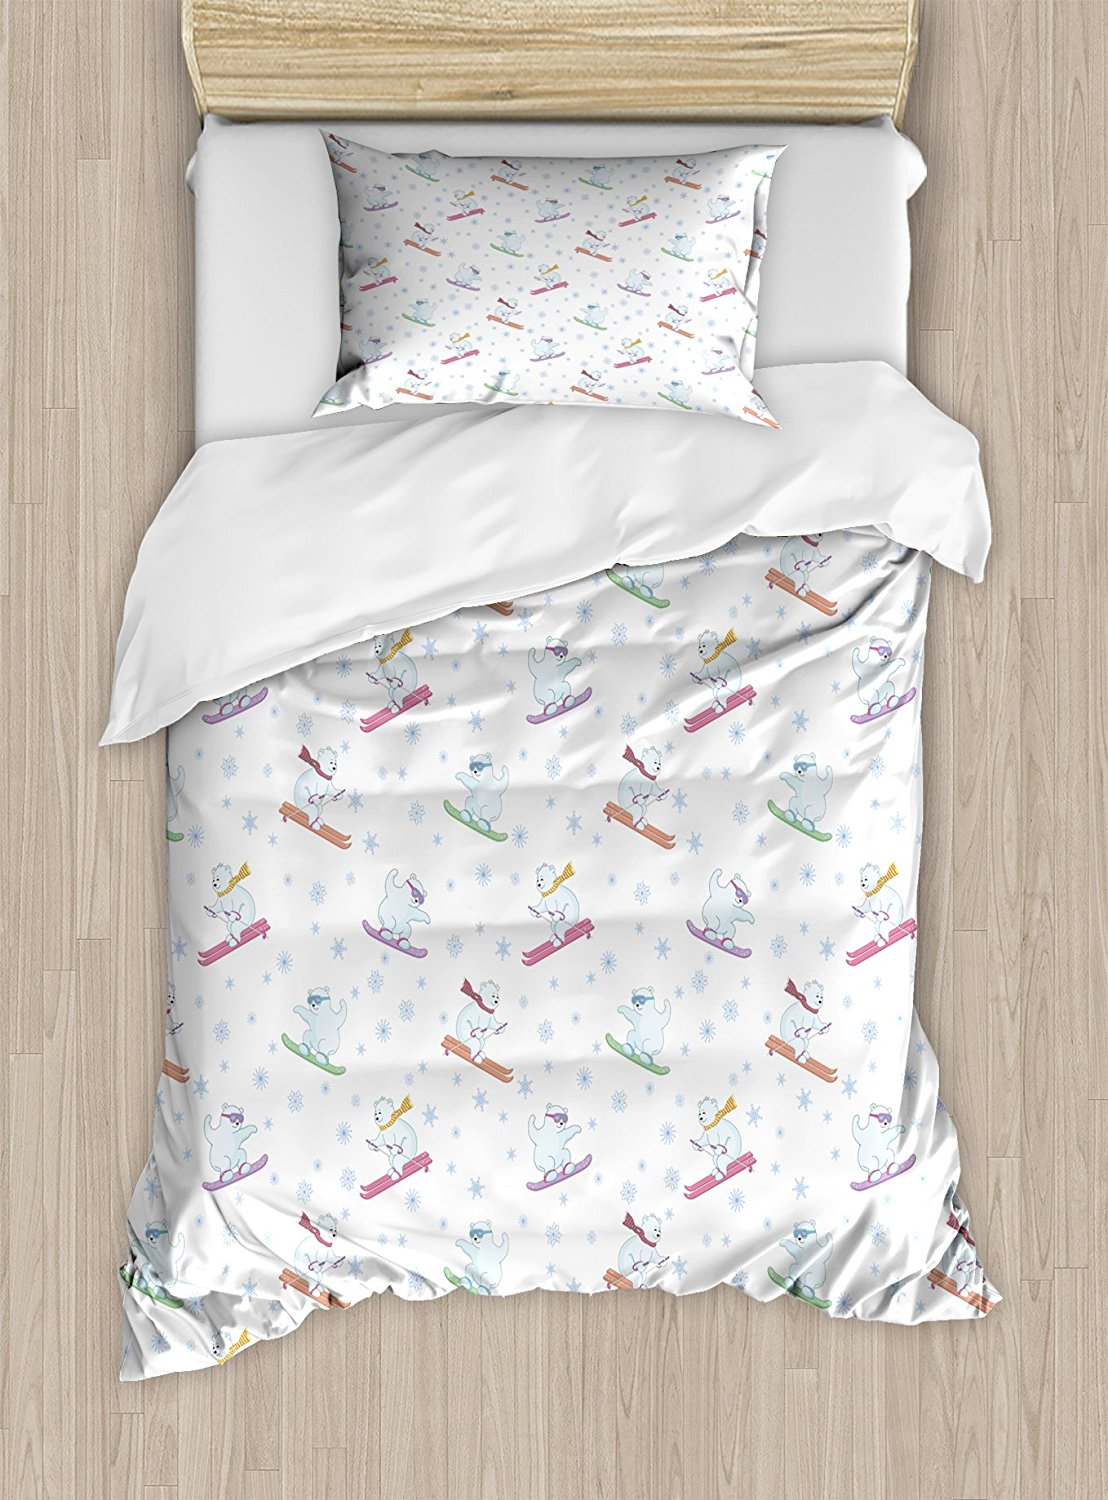 Bear Duvet Cover Set Funny Polar Teddy Bears on Snowboards Skiing with Scarf and Glasses Ornate Snowflakes